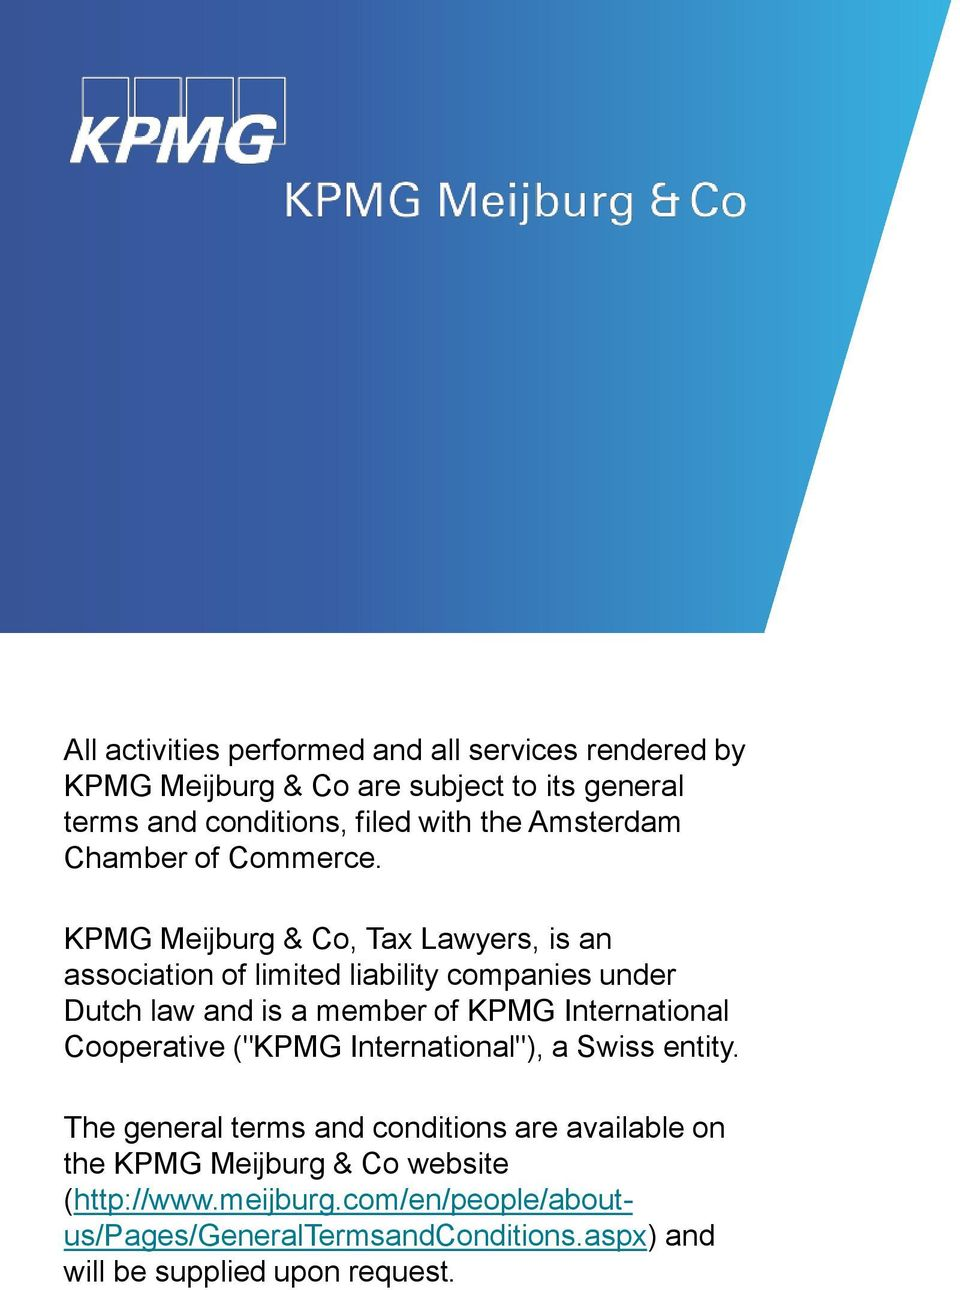 KPMG Meijburg & Co, Tax Lawyers, is an association of limited liability companies under Dutch law and is a member of KPMG International